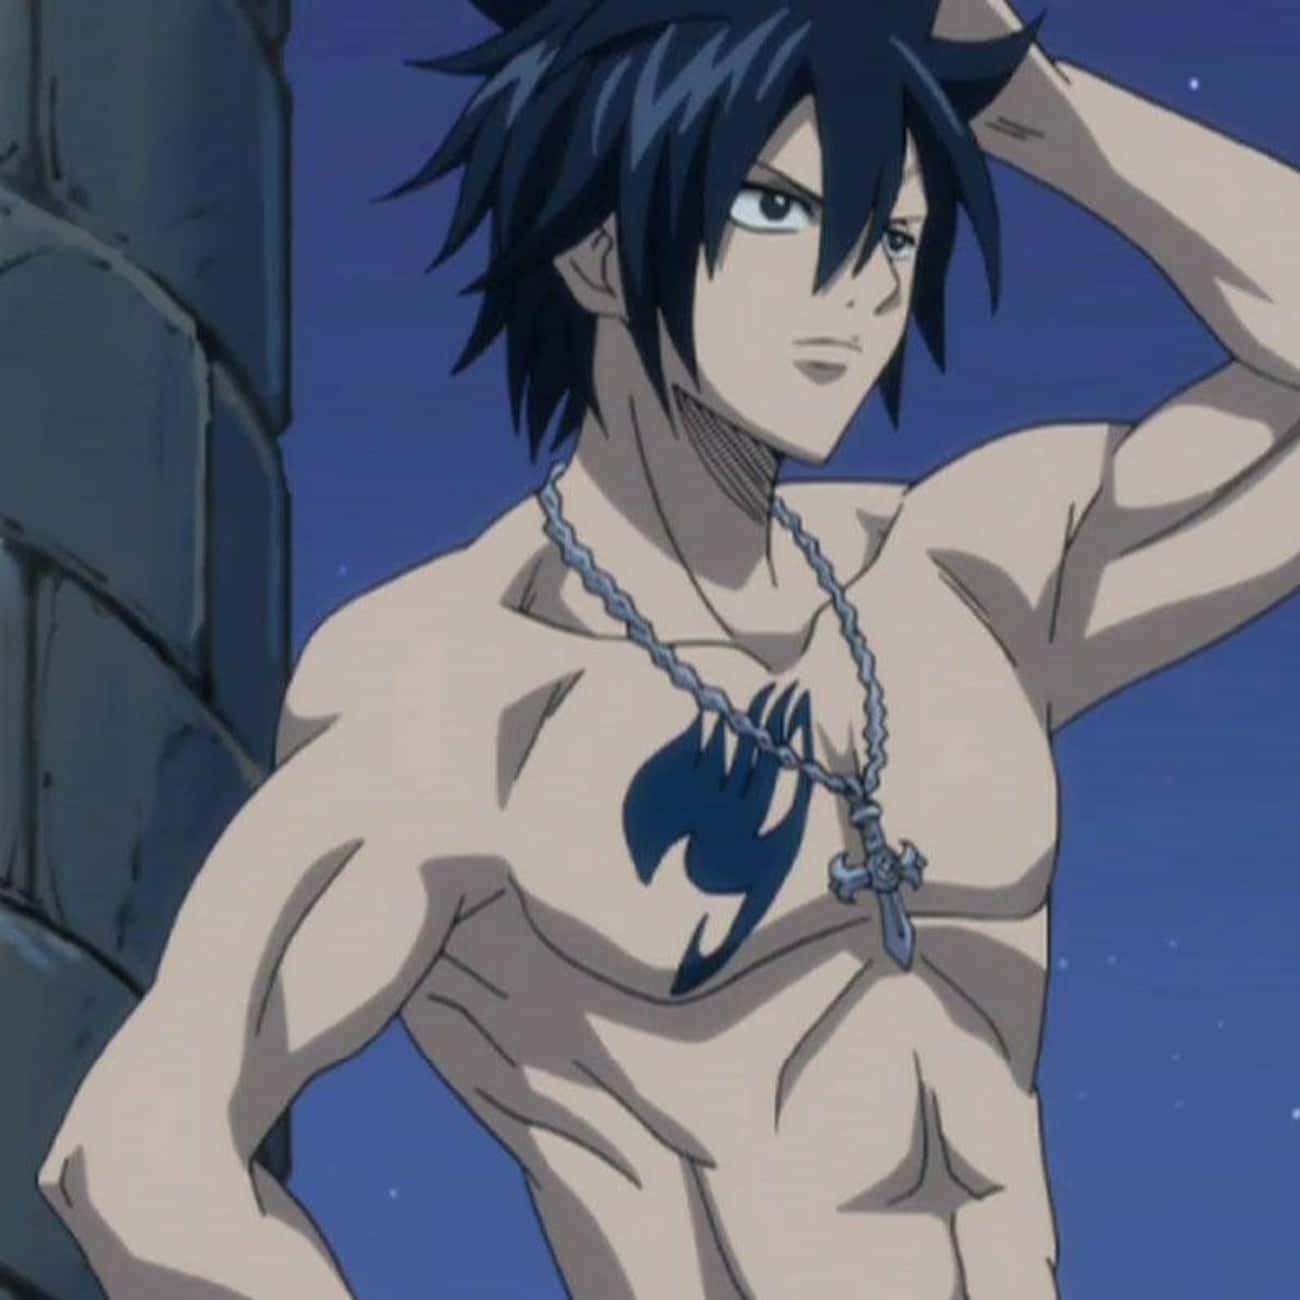 Wall That Blocks You from Movi is listed (or ranked) 3 on the list The Best Gray Fullbuster Quotes